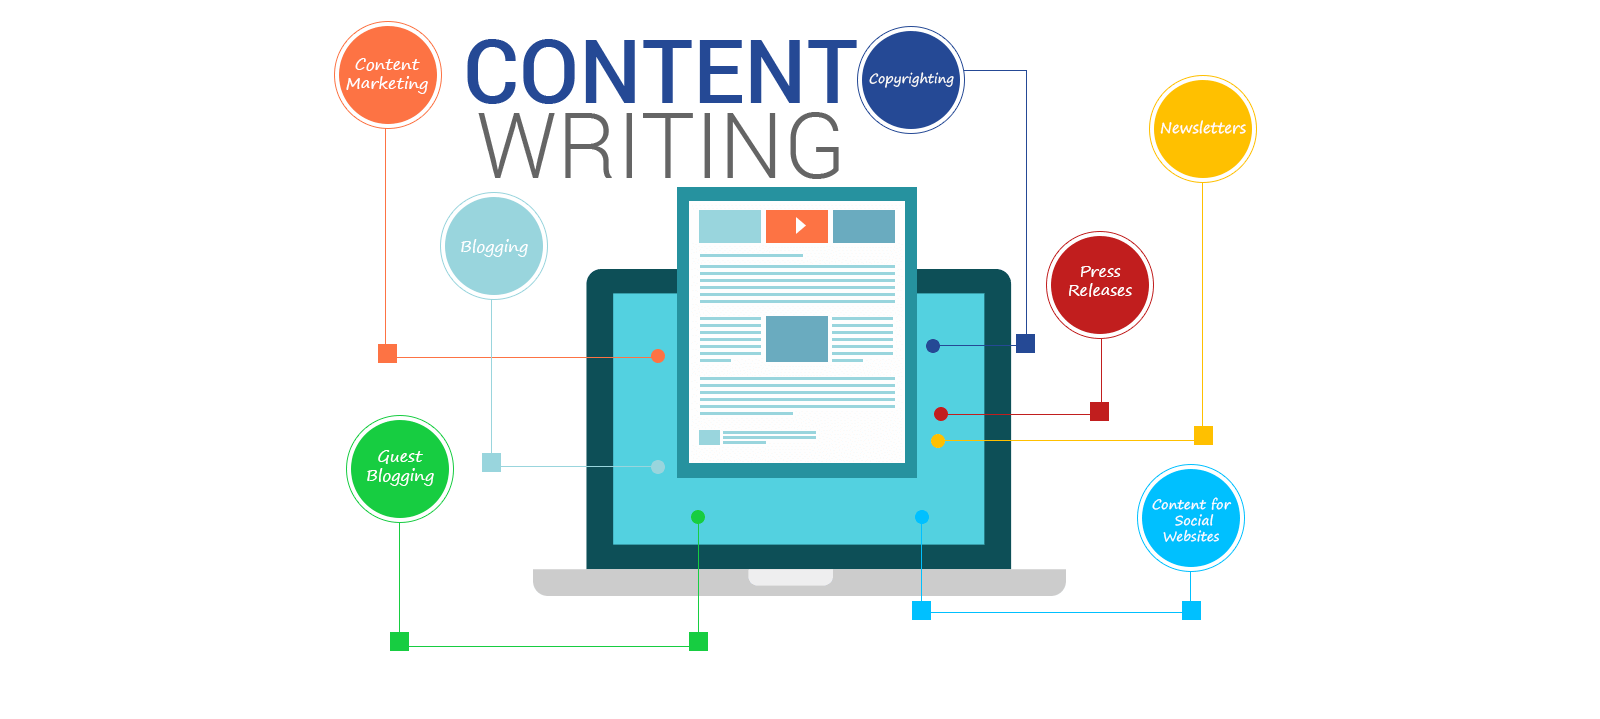 Content Writing Services In Chennai  Raga Designers Business Profile